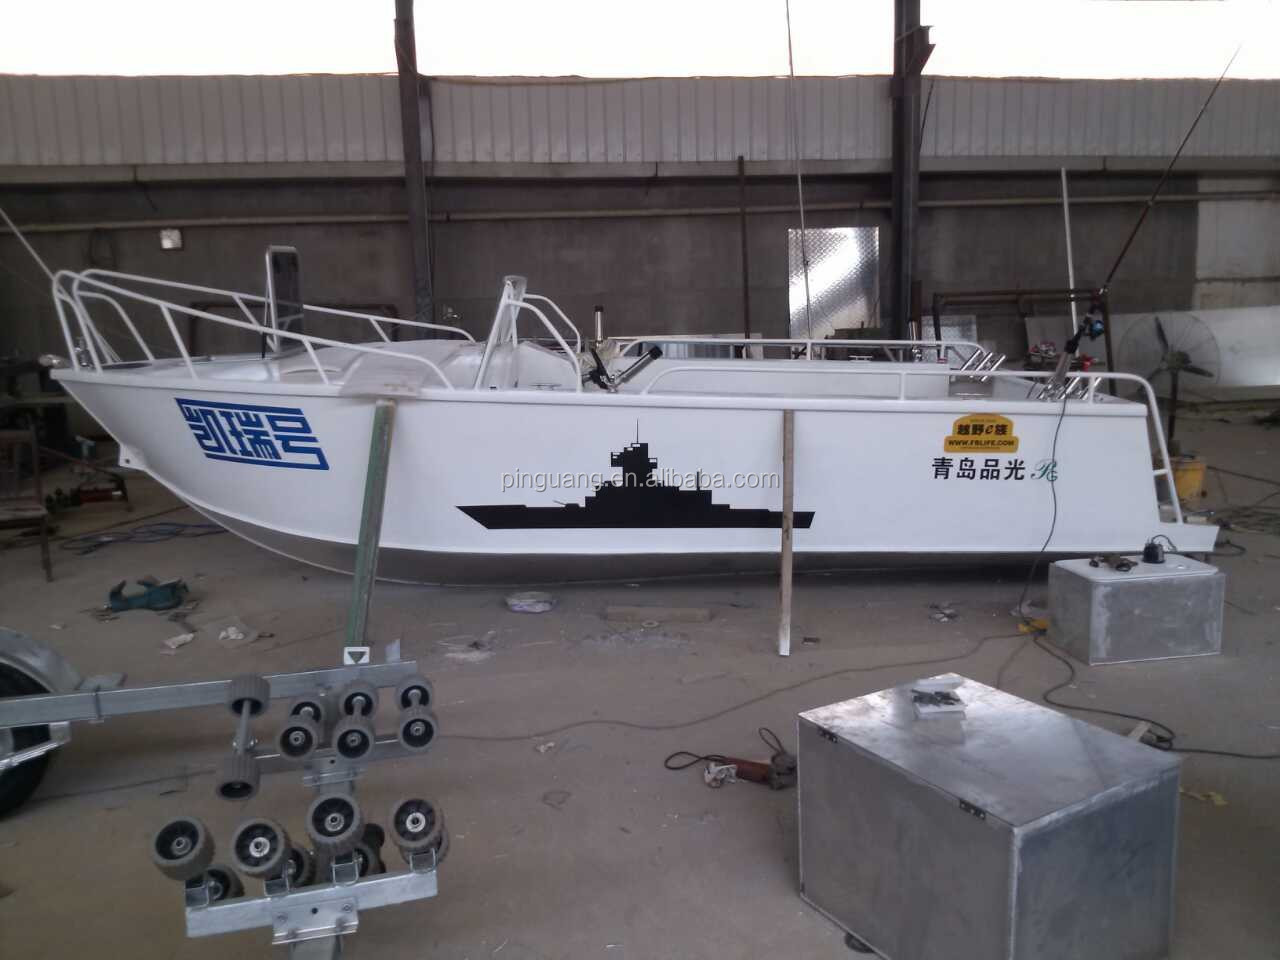 20ft aluminum used cheap fishing boat for sale buy for Used aluminum fishing boats for sale in michigan